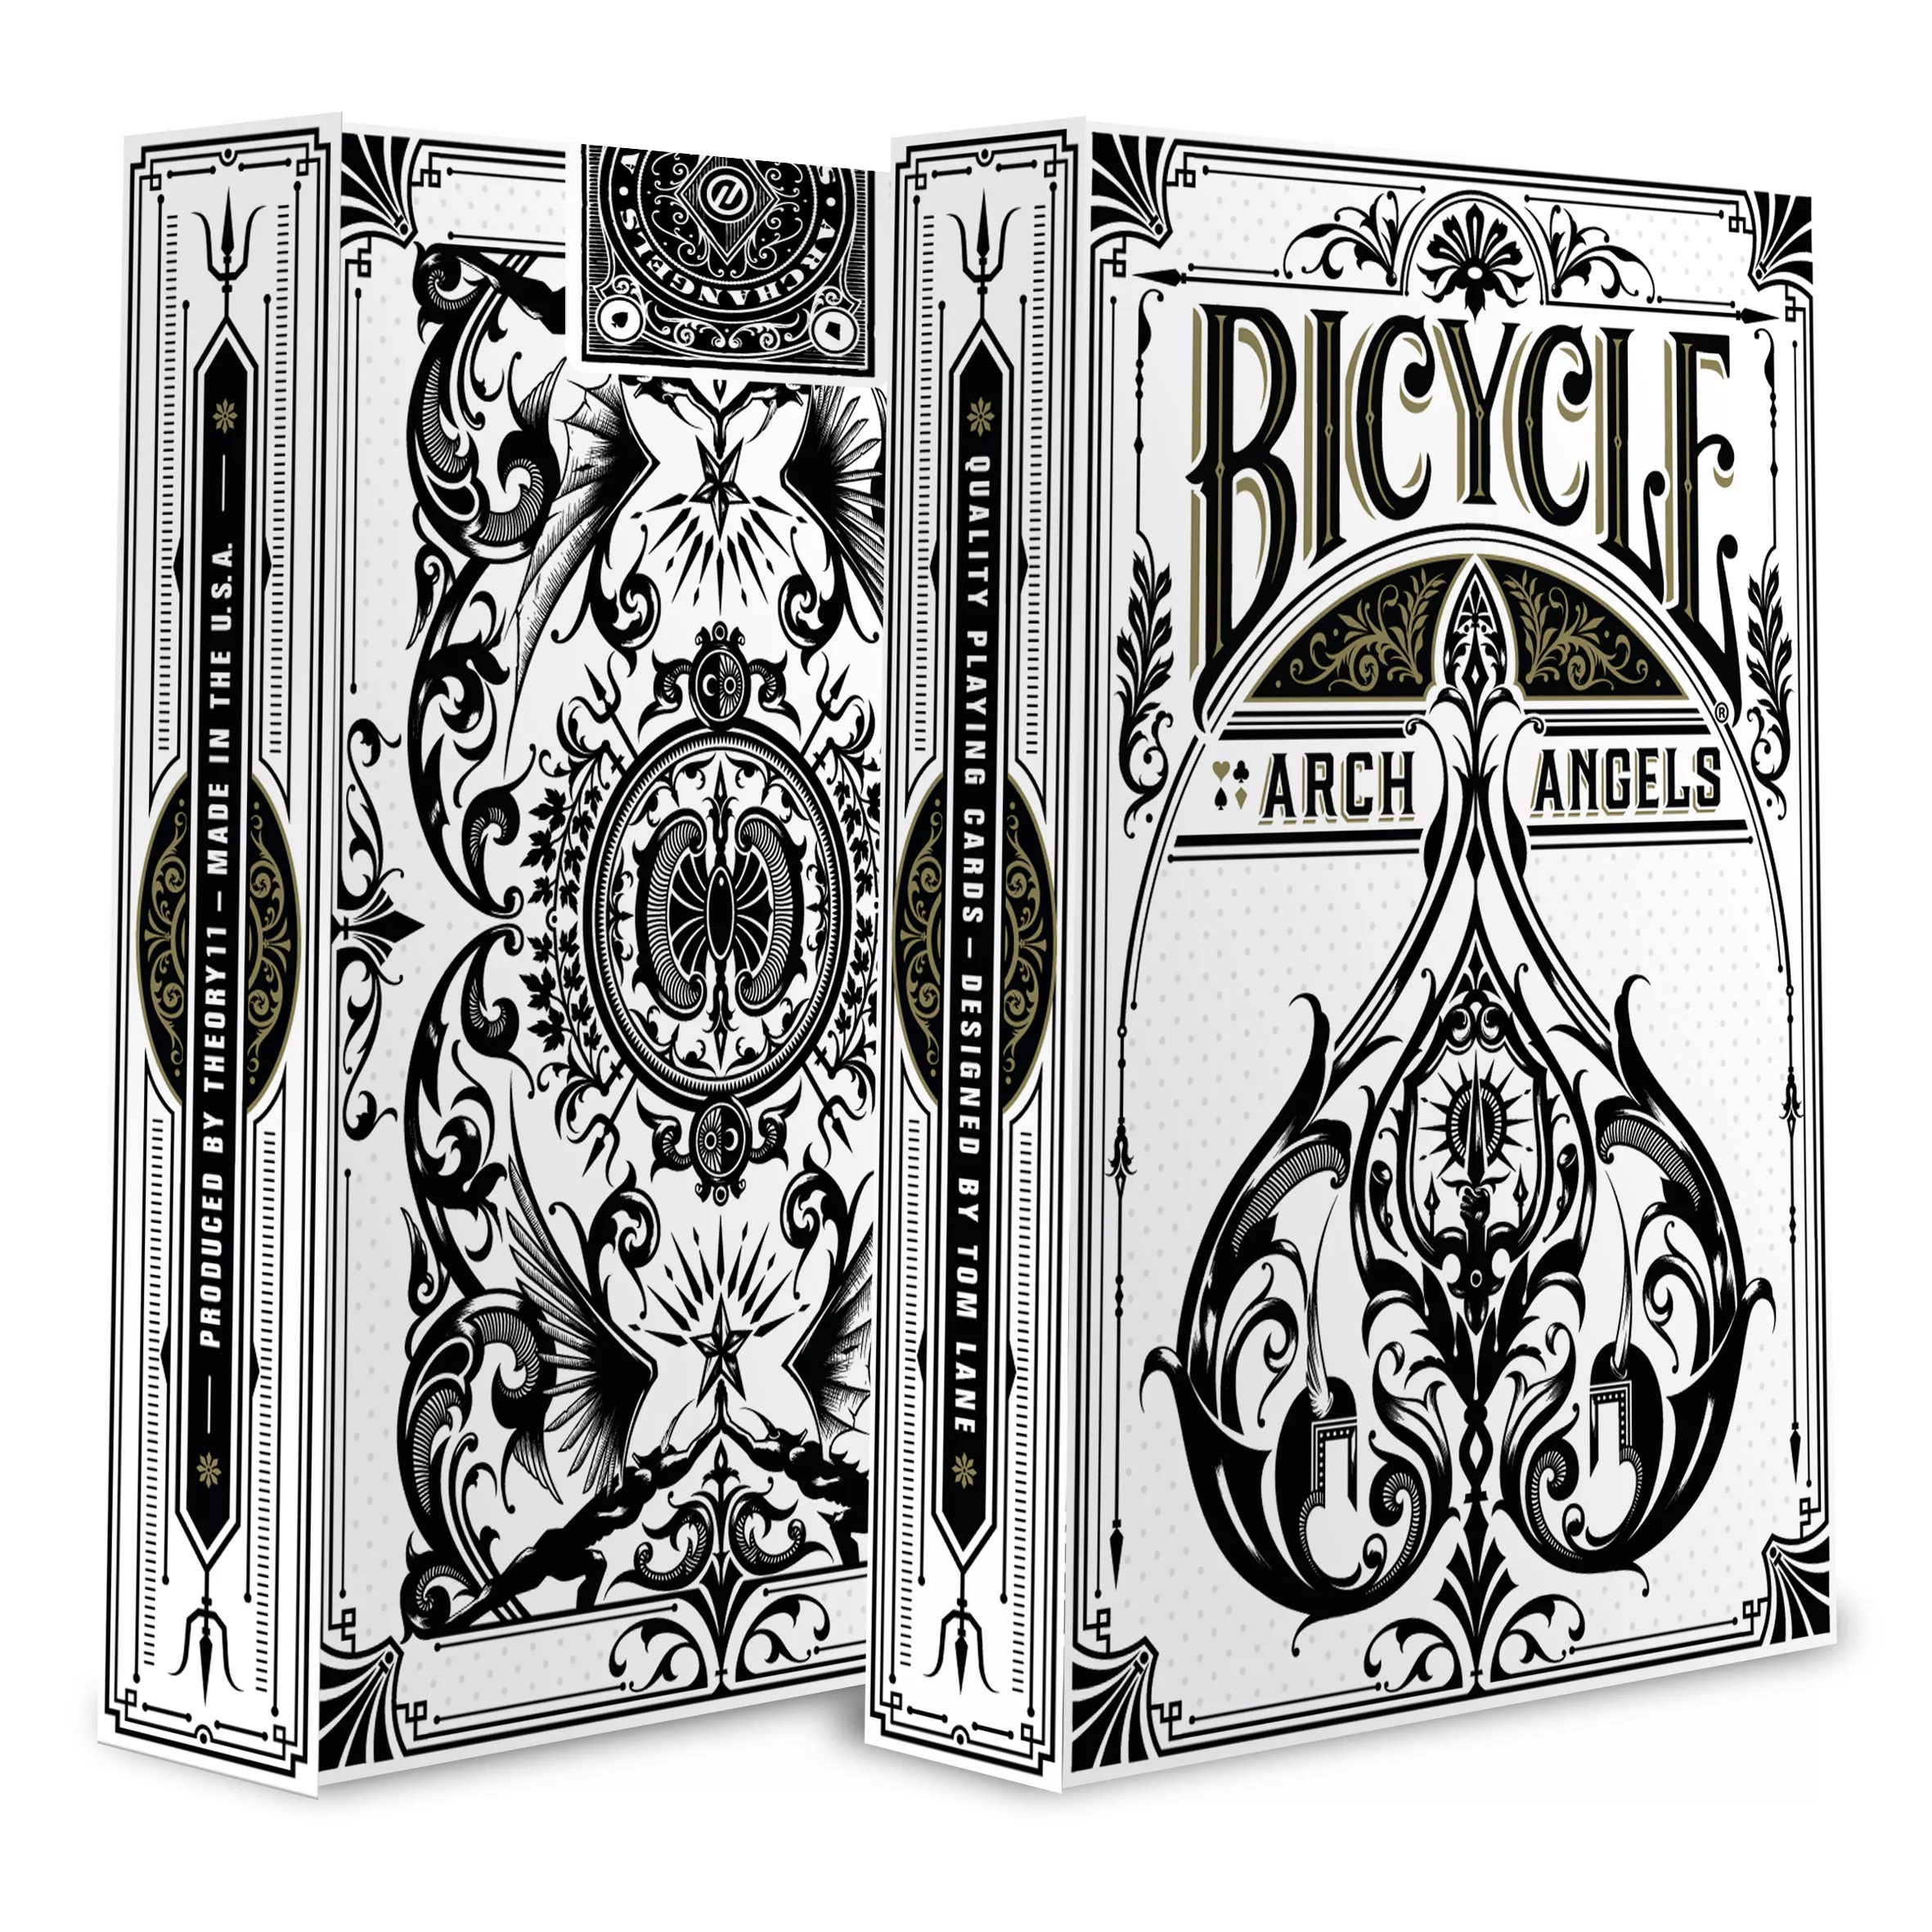 "картинка Карты ""Bicycle Archangels - Bicycle Premium"" от магазина Gamesdealer.ru"